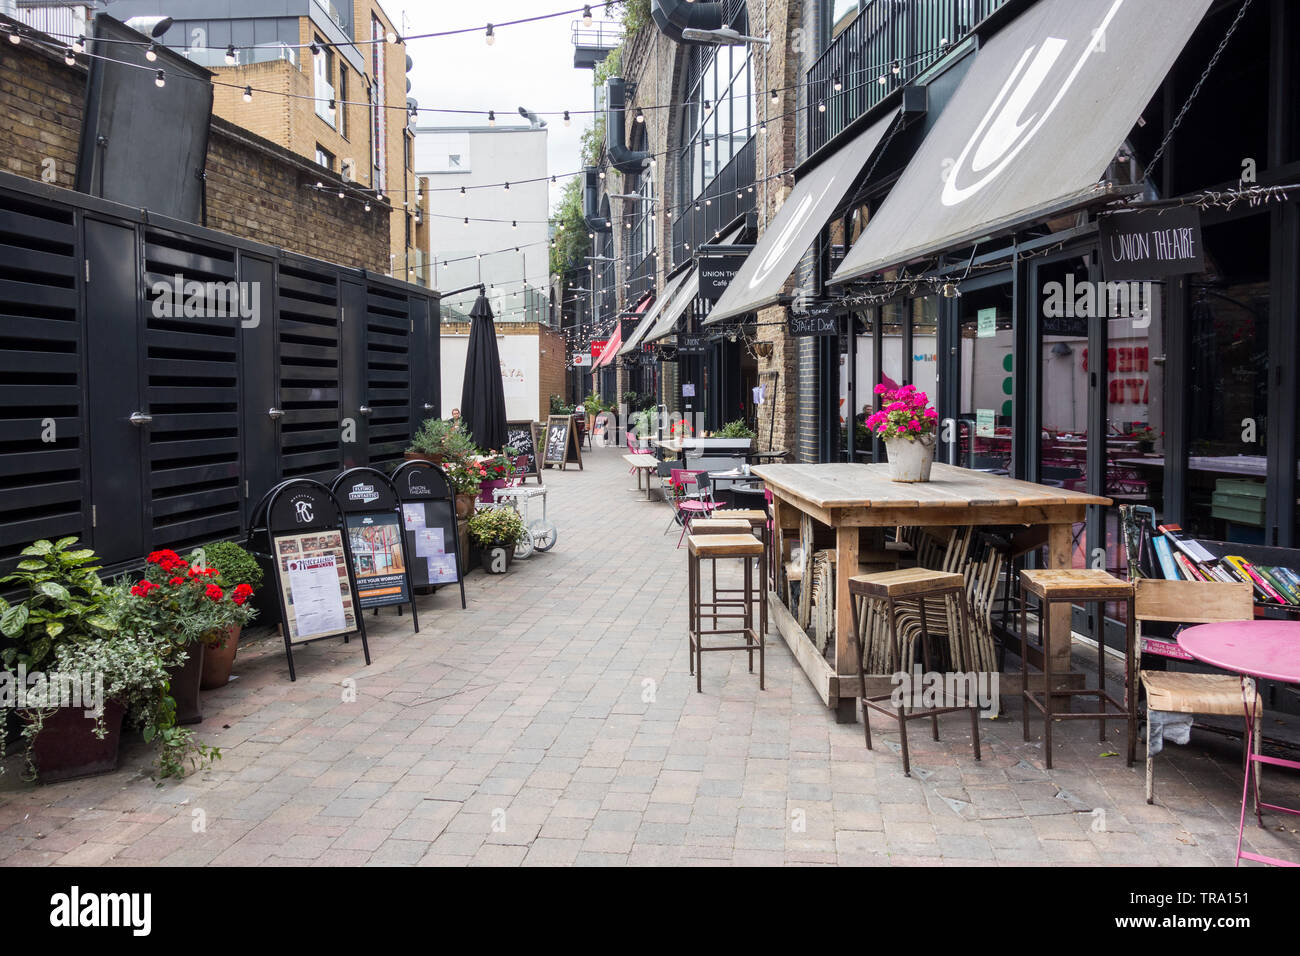 Old Union Yard Arches foodie-hub near Bankside, London, SE1, UK - Stock Image